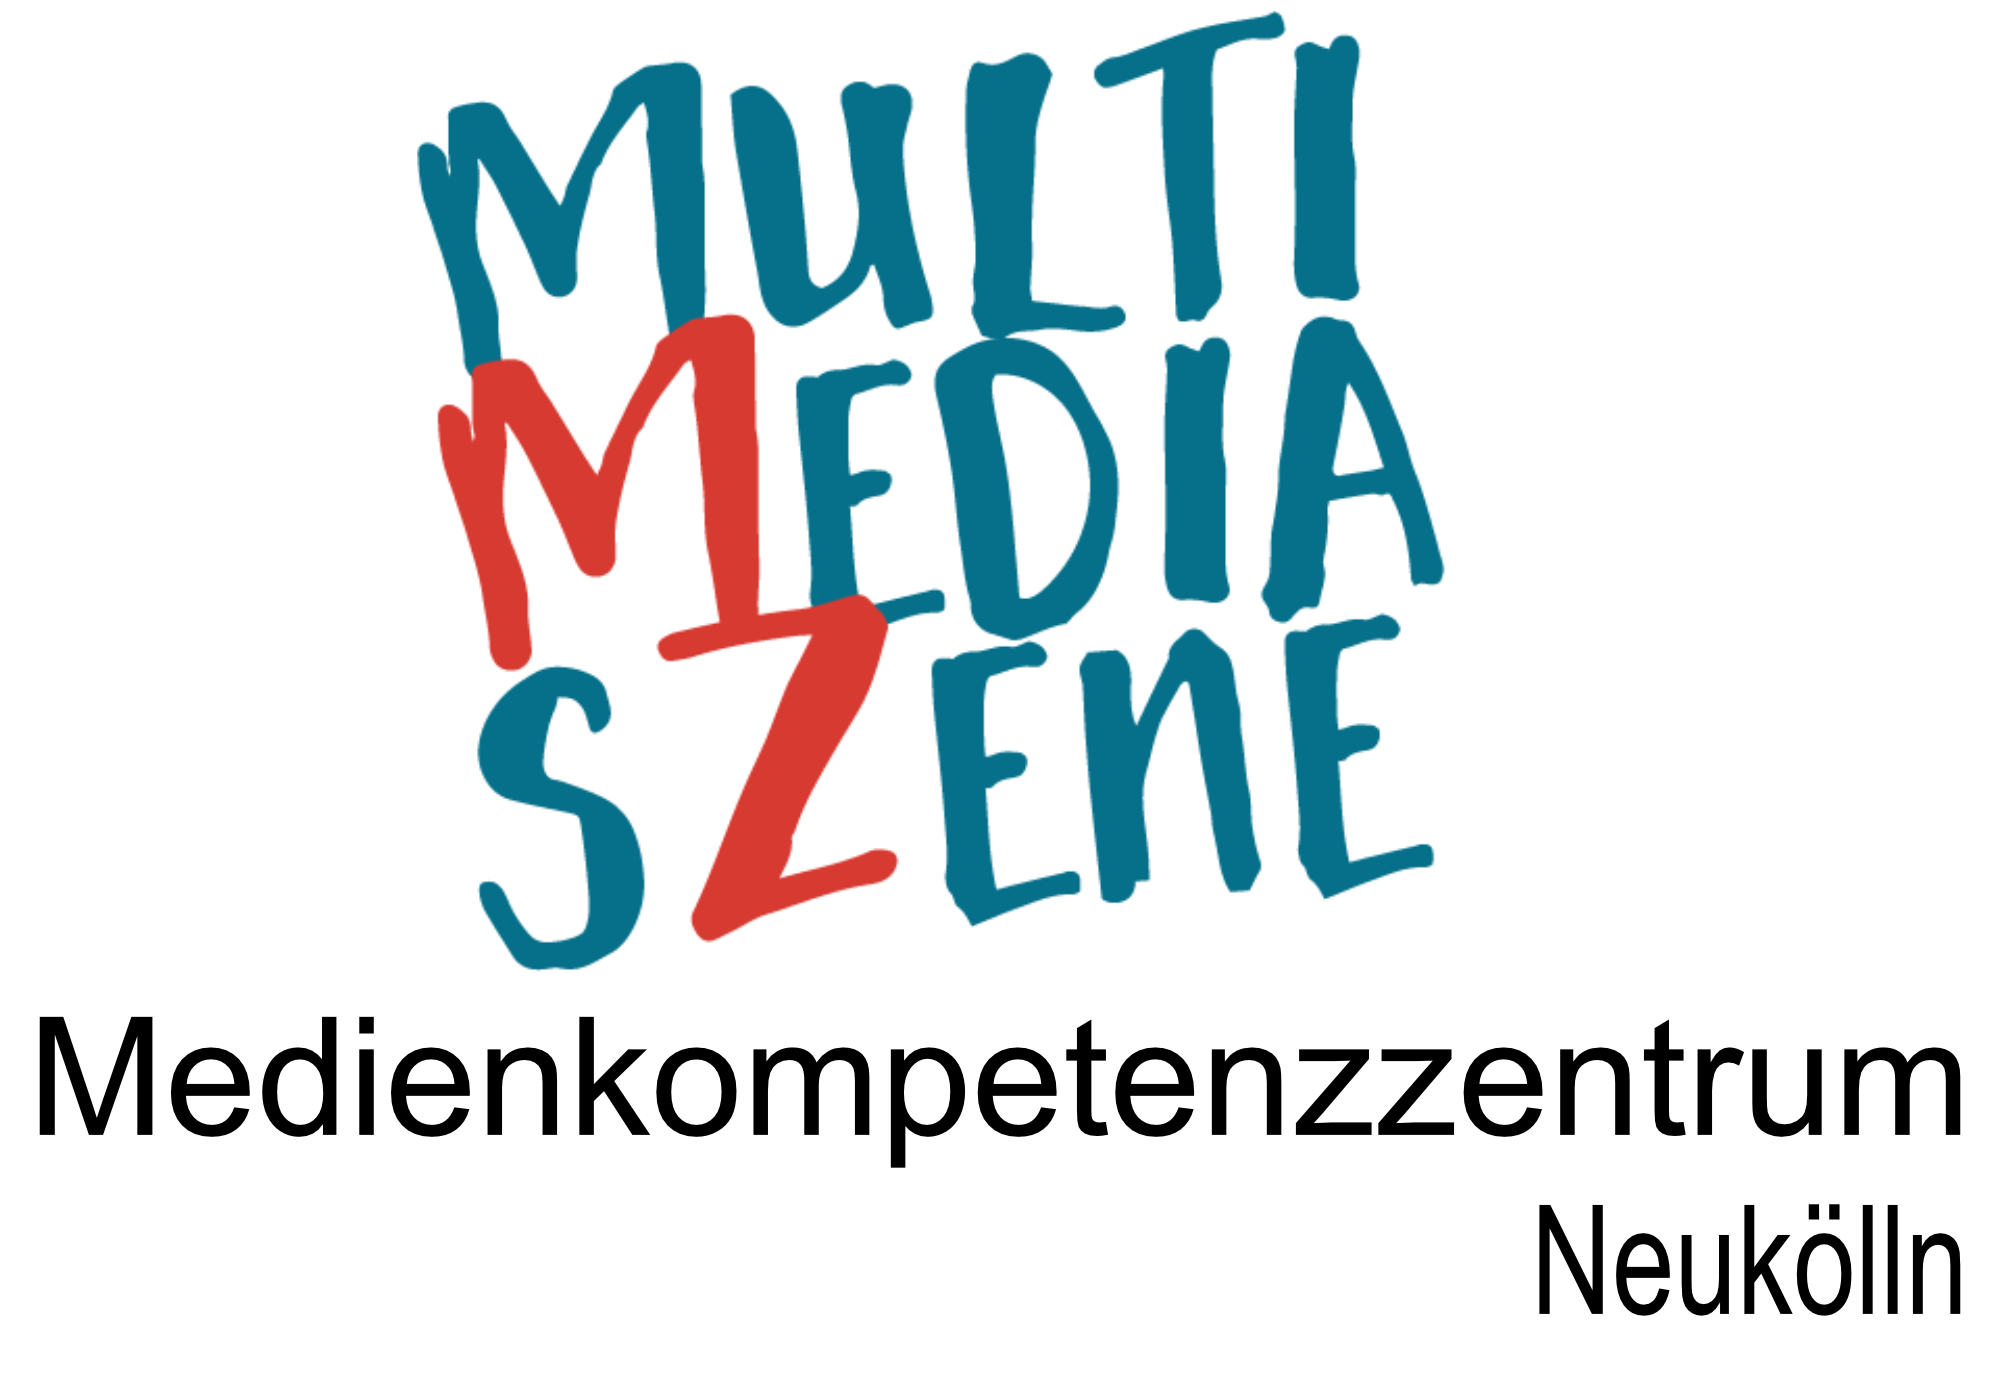 logo multimediaszene Medienkompetenzzentrum